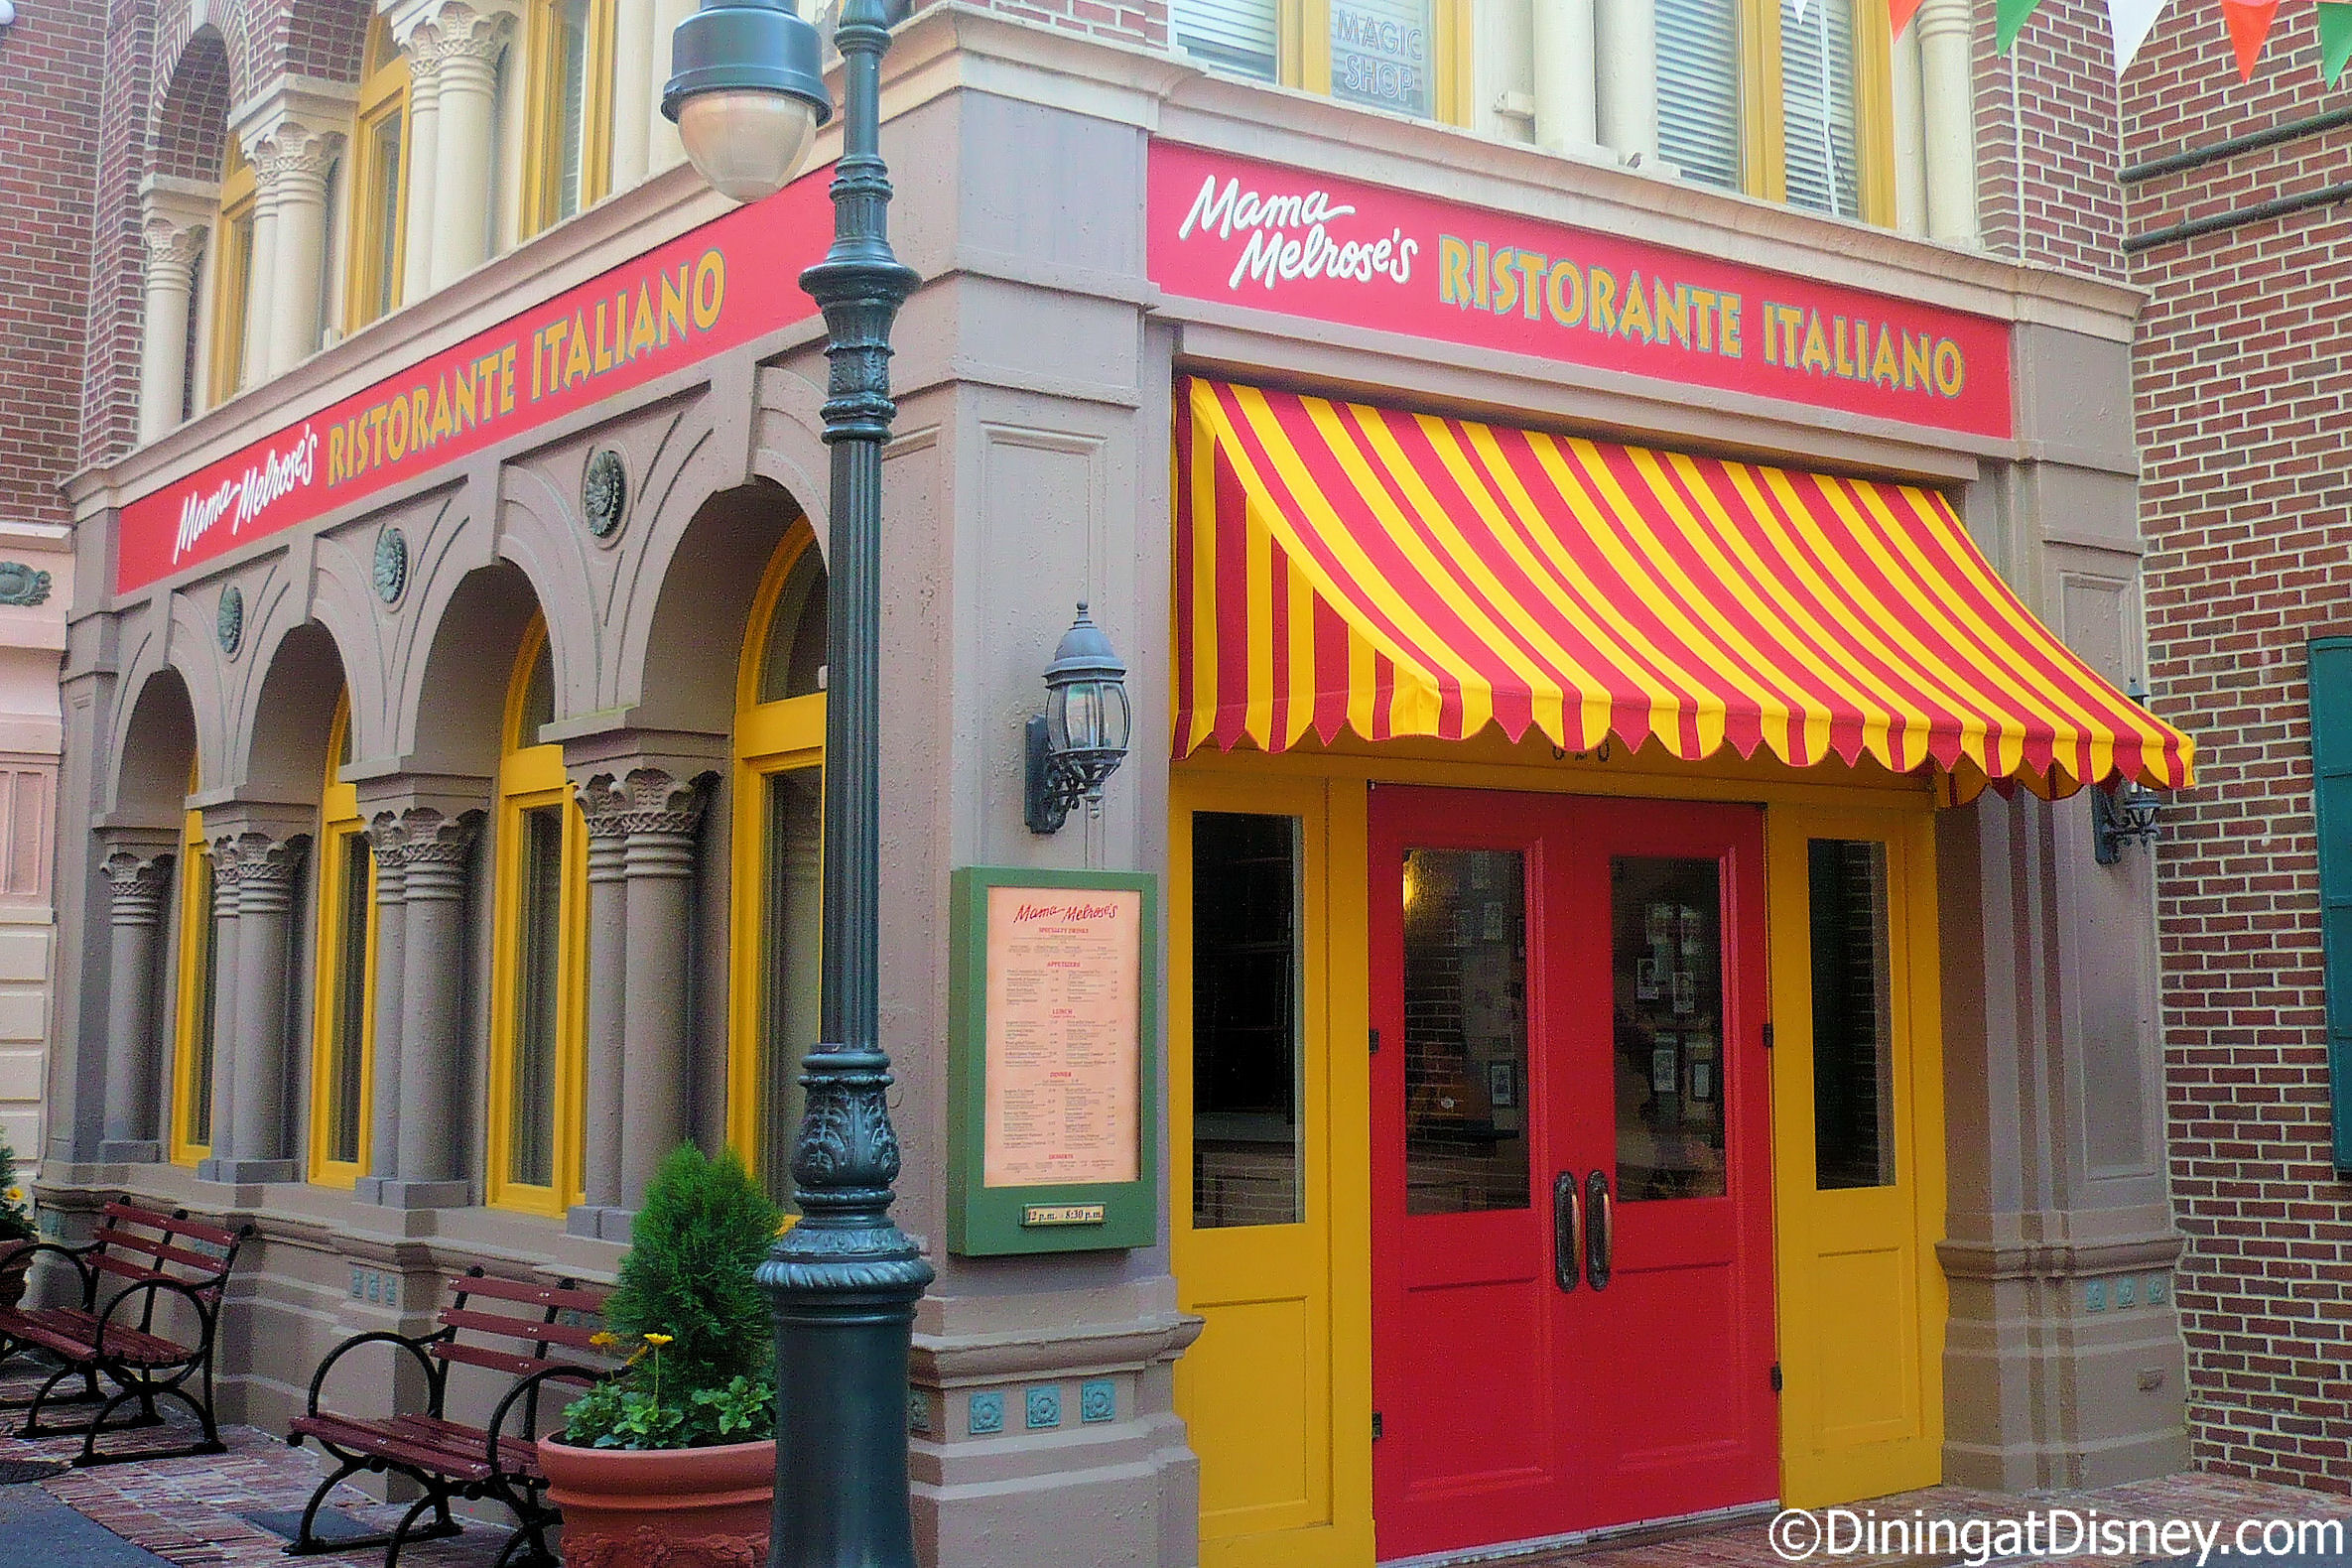 Mama Melroses Ristorante Italiano : MamaMelrose wm from diningatdisney.com size 2370 x 1580 jpeg 1013kB